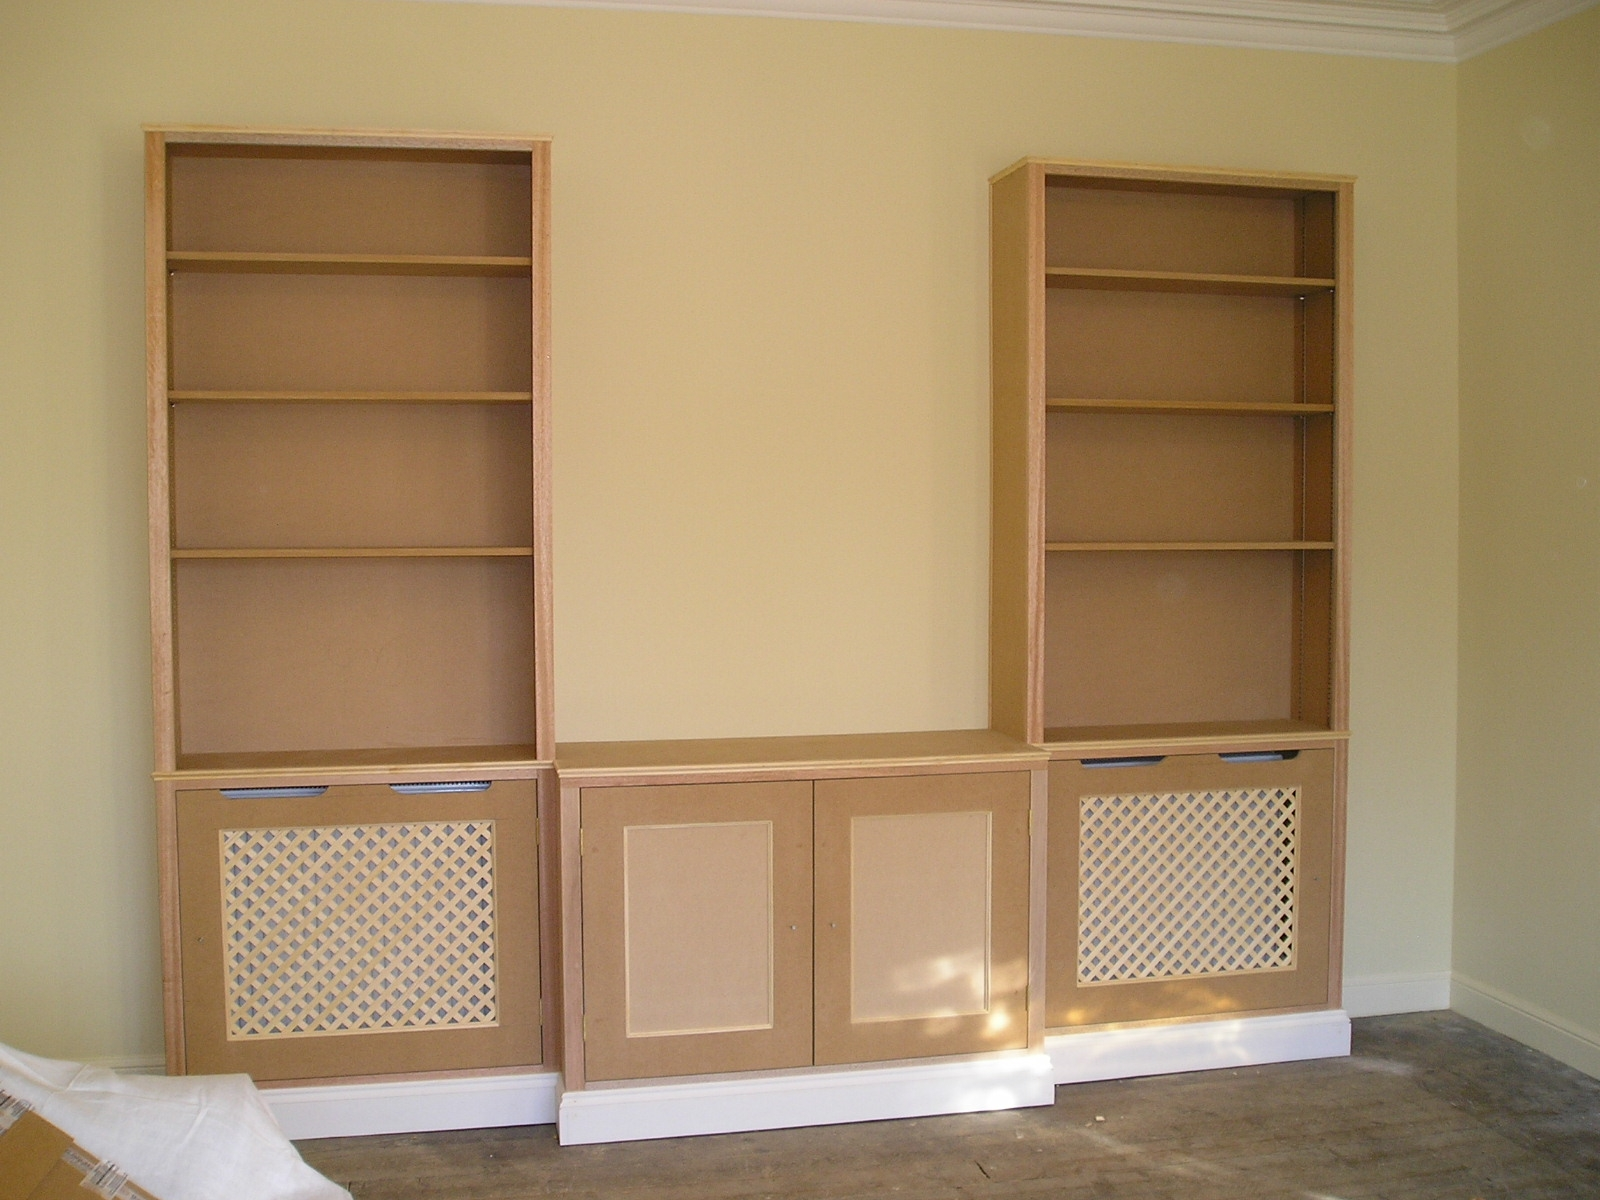 Radiator Covers Holloway Joinery Inside Cabinet Bookcase Image 15 Of